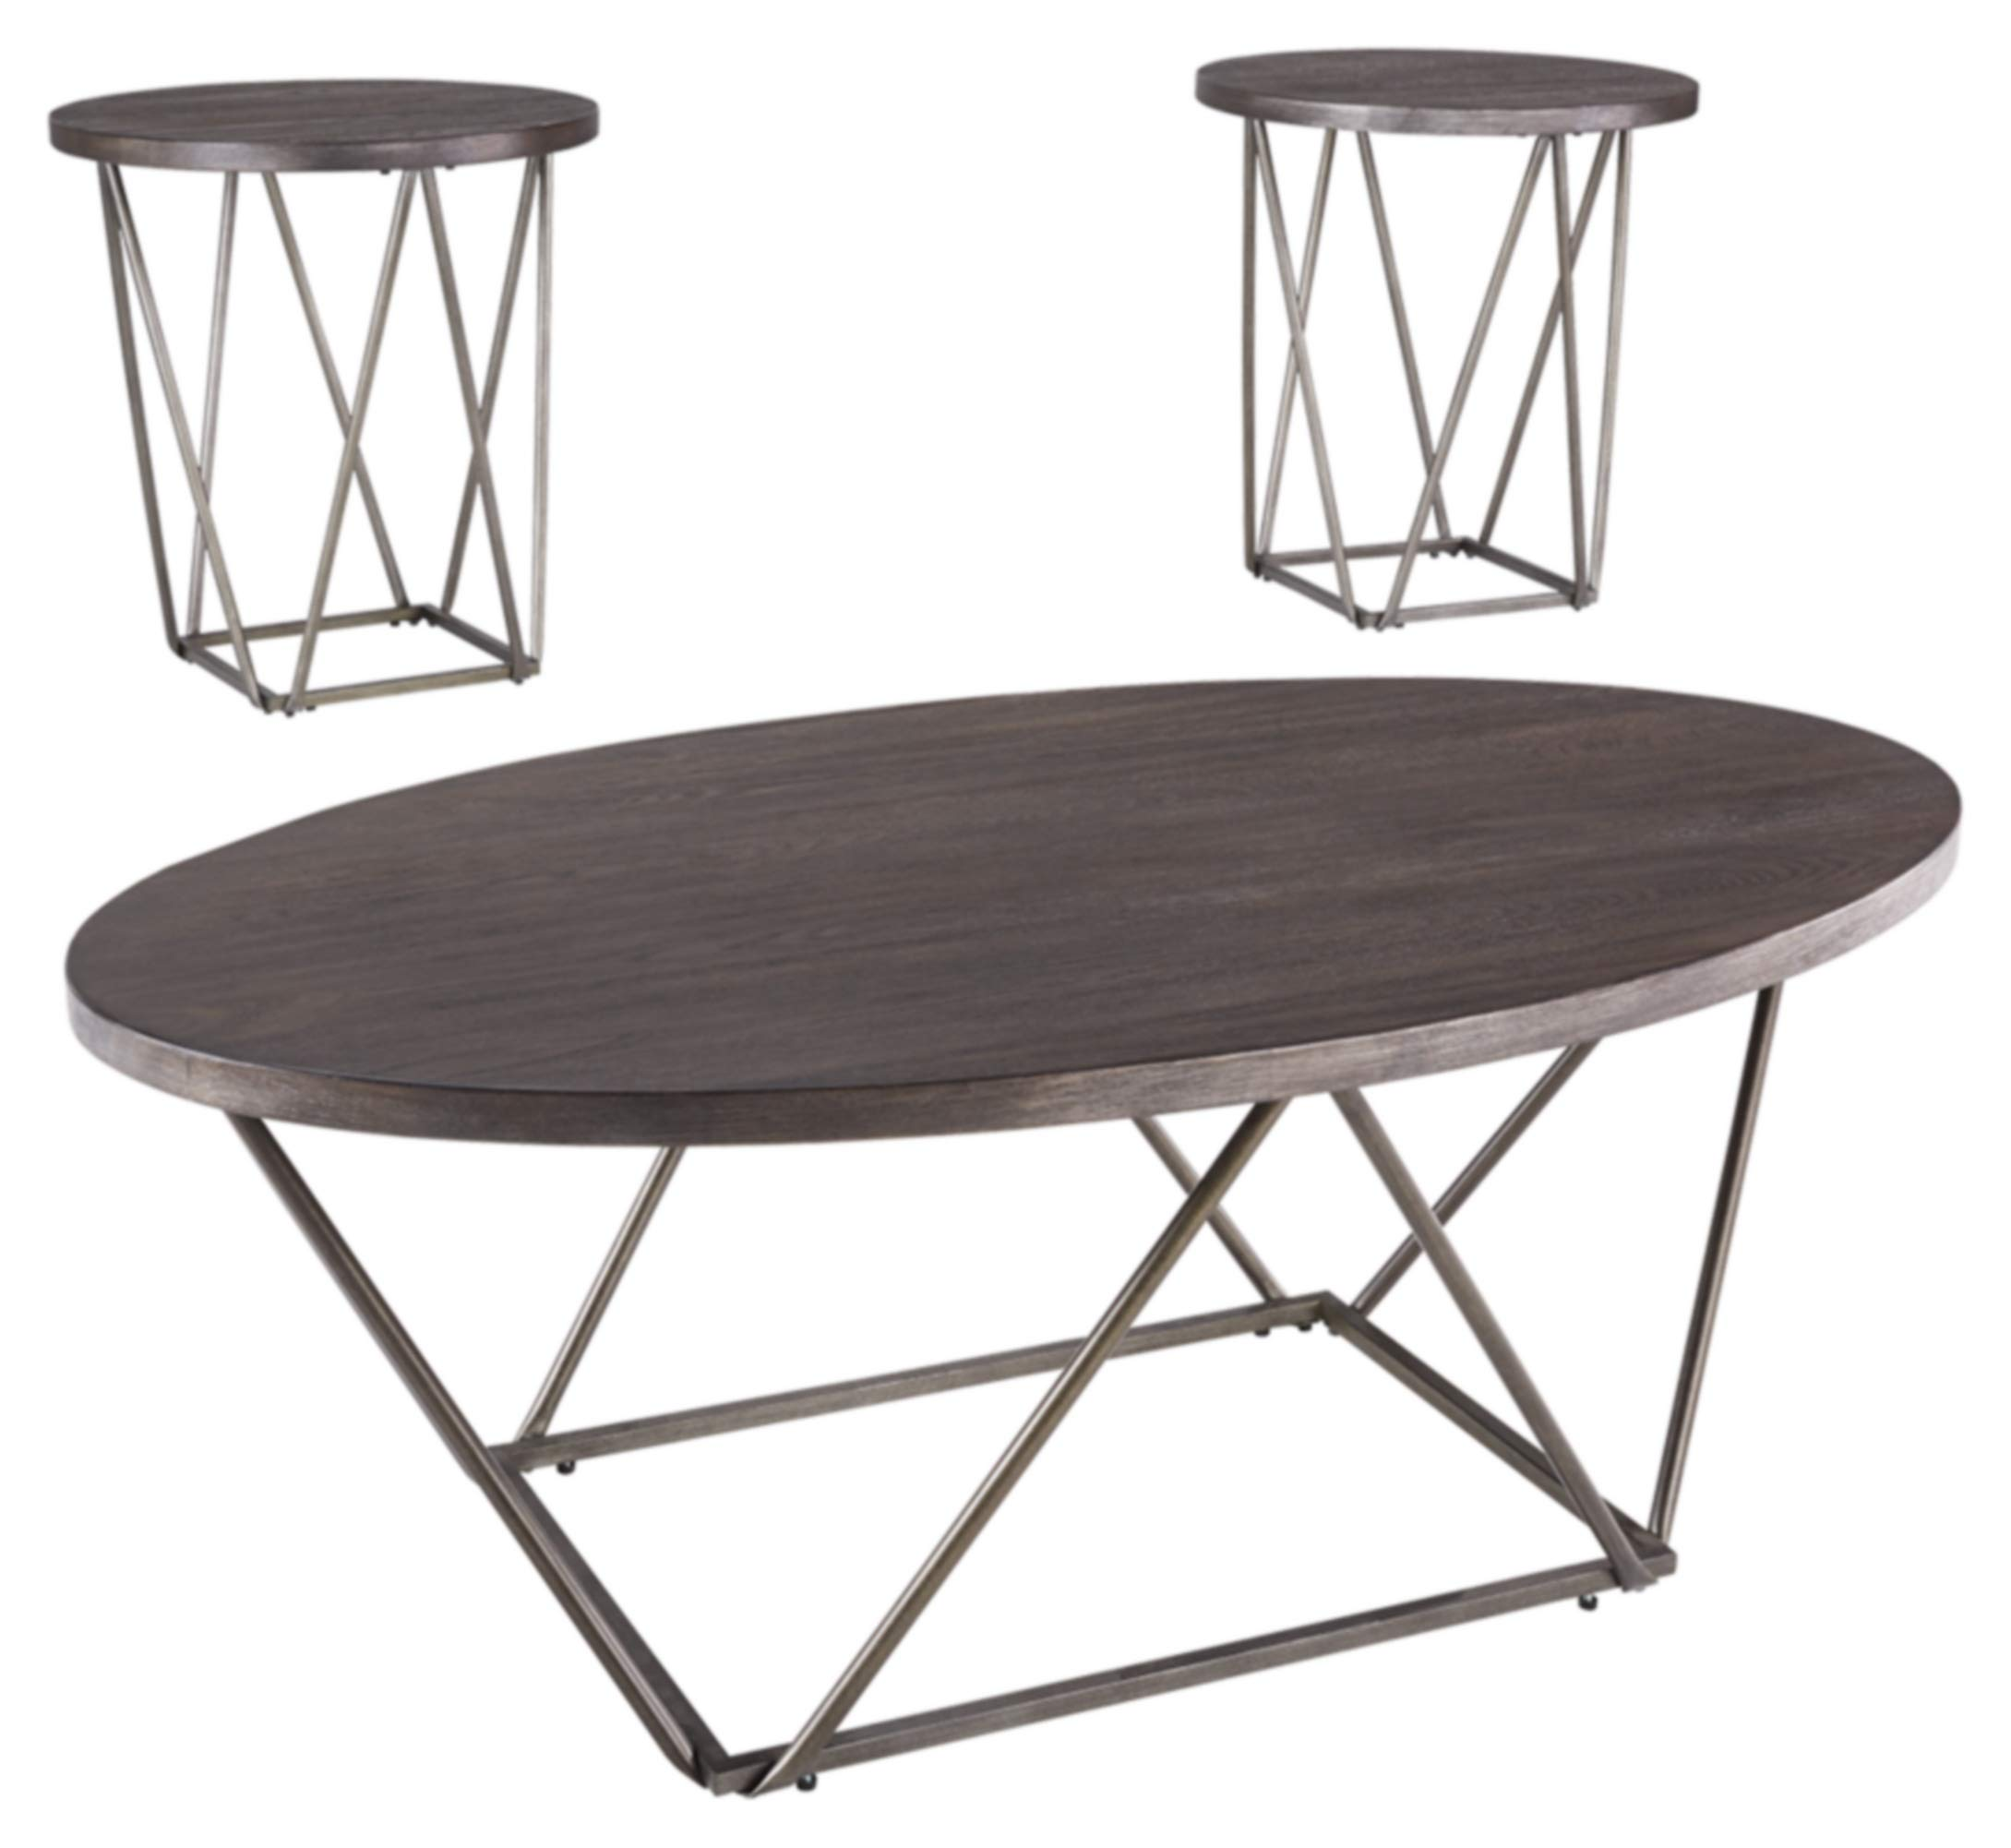 Ashley Furniture Signature Design - Neimhurst Occasional Table Set - Set of 3 - Sleek Brown by Signature Design by Ashley